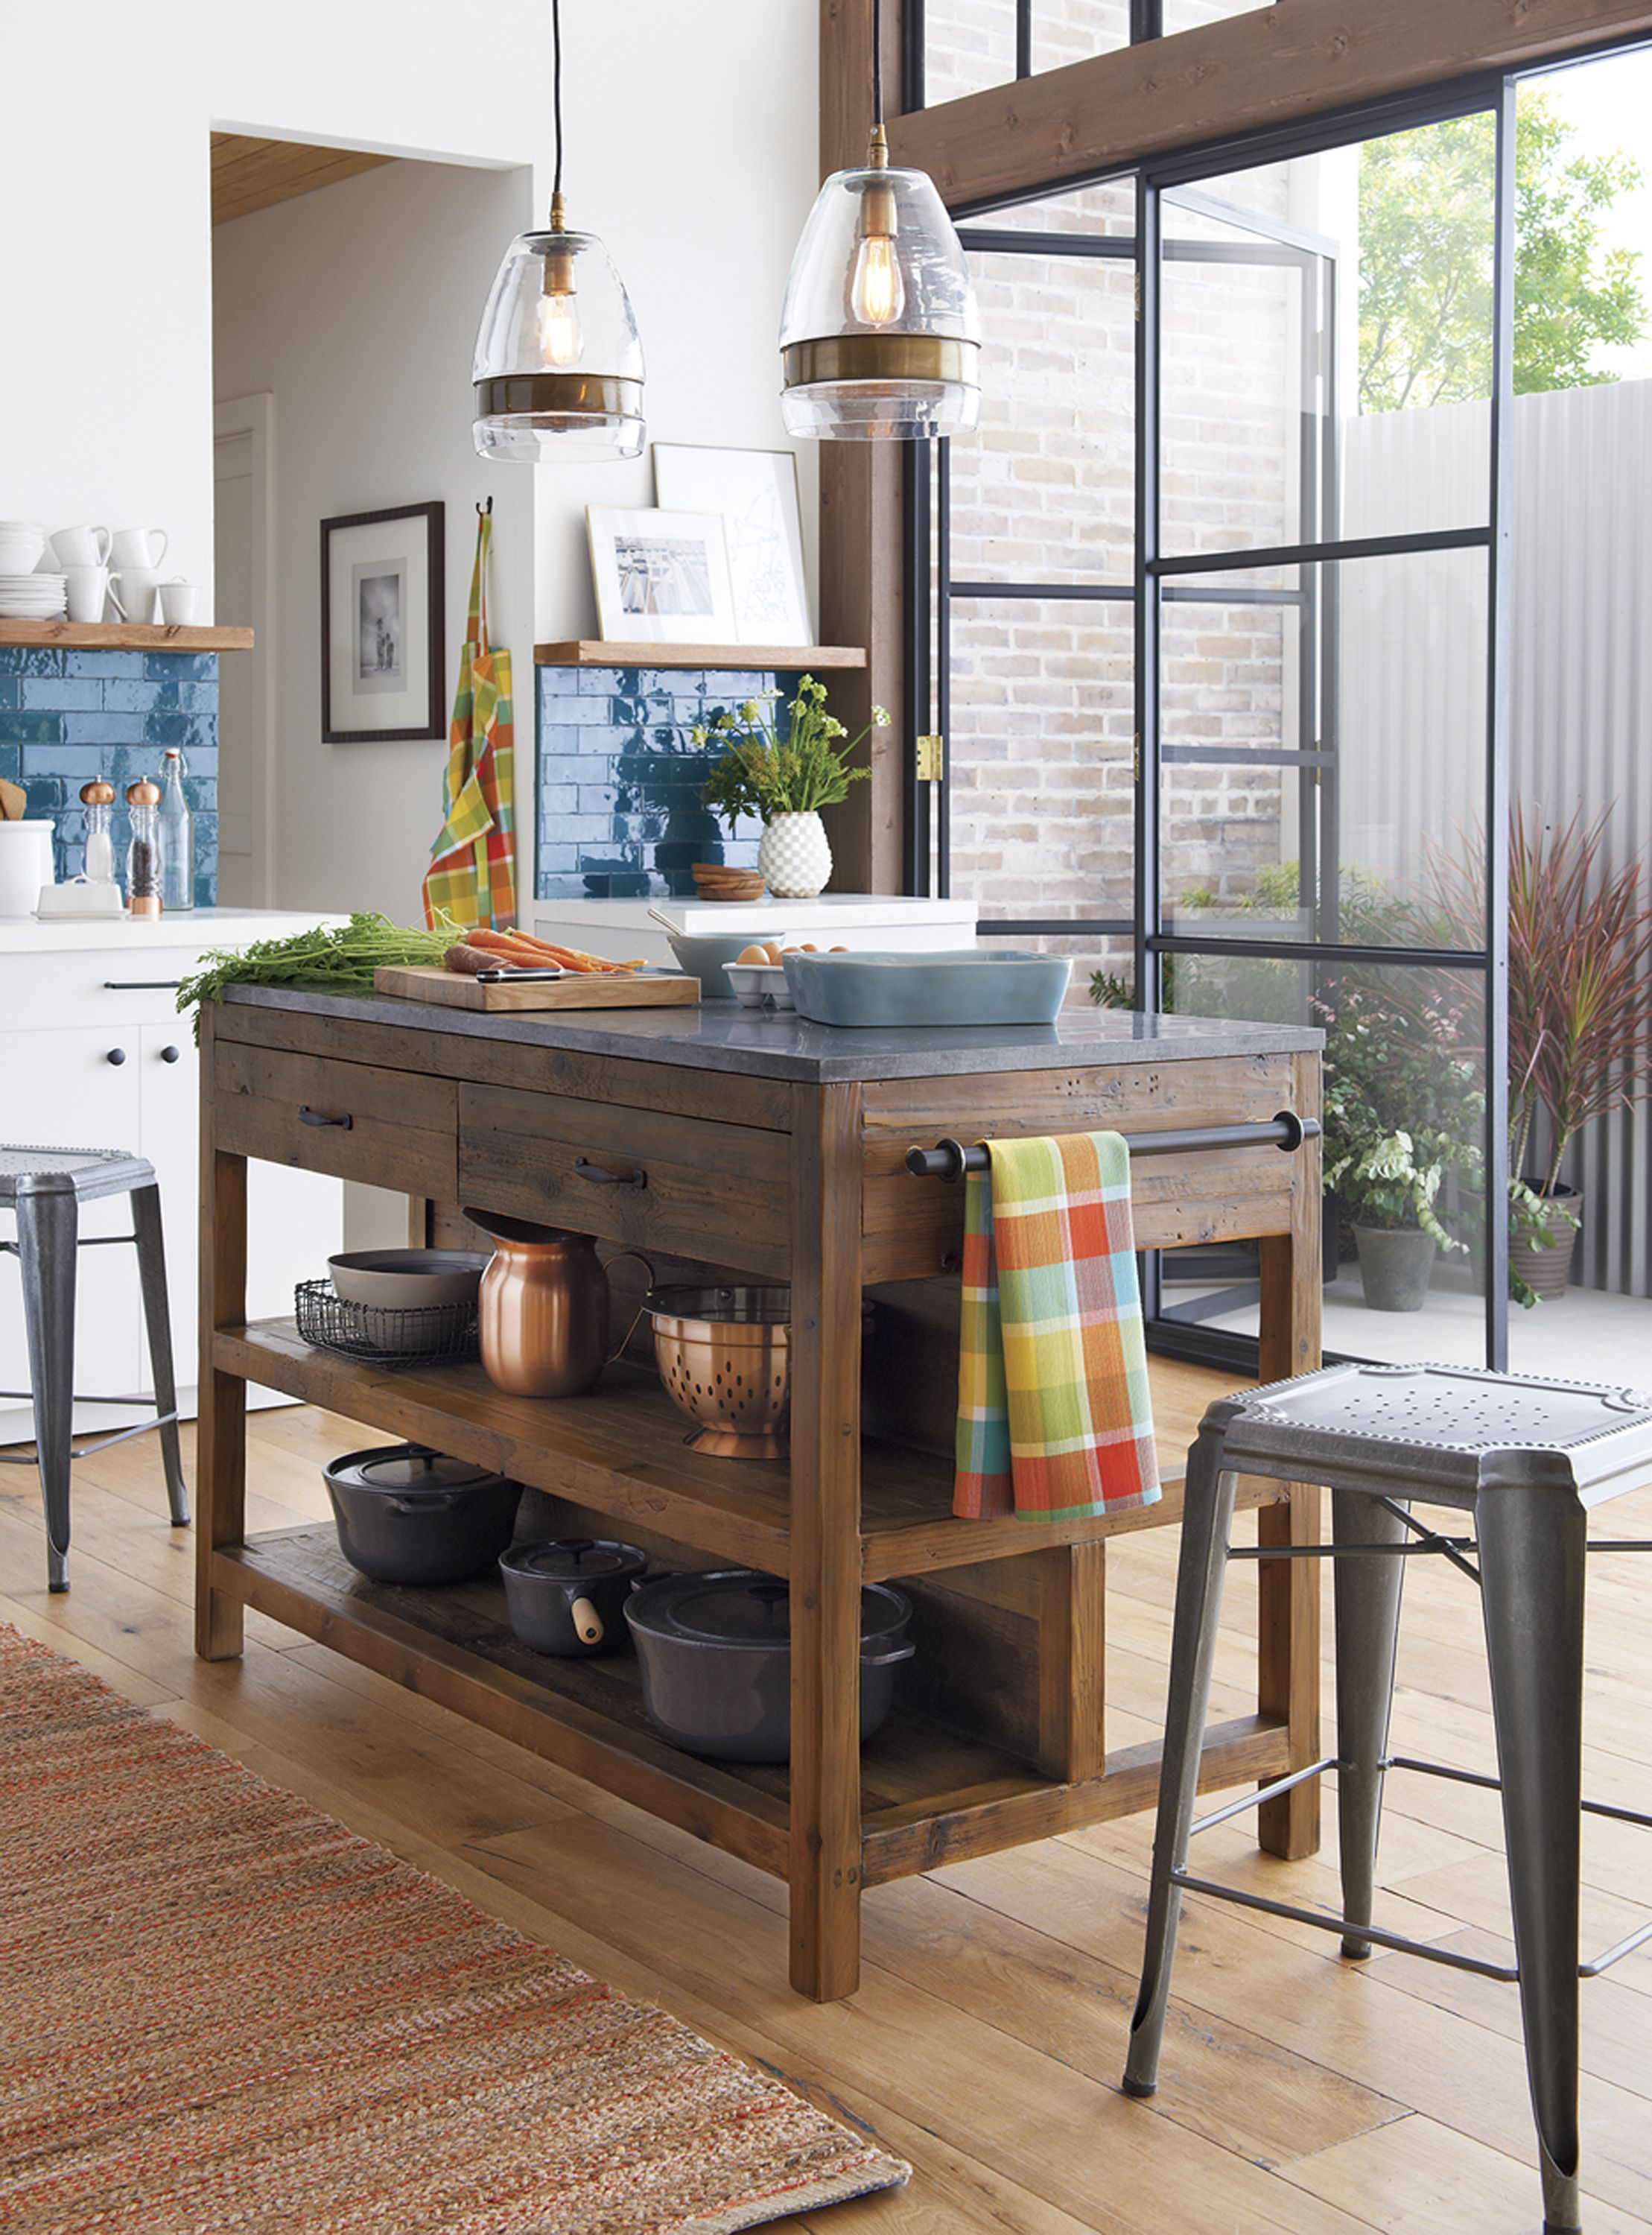 Top 29 Diy Ideas Adding Rustic Farmhouse Feels To Kitchen: Like A Treasured Vintage Find Or A Custom-designed Piece, This Elegant Kitchen Island Serves